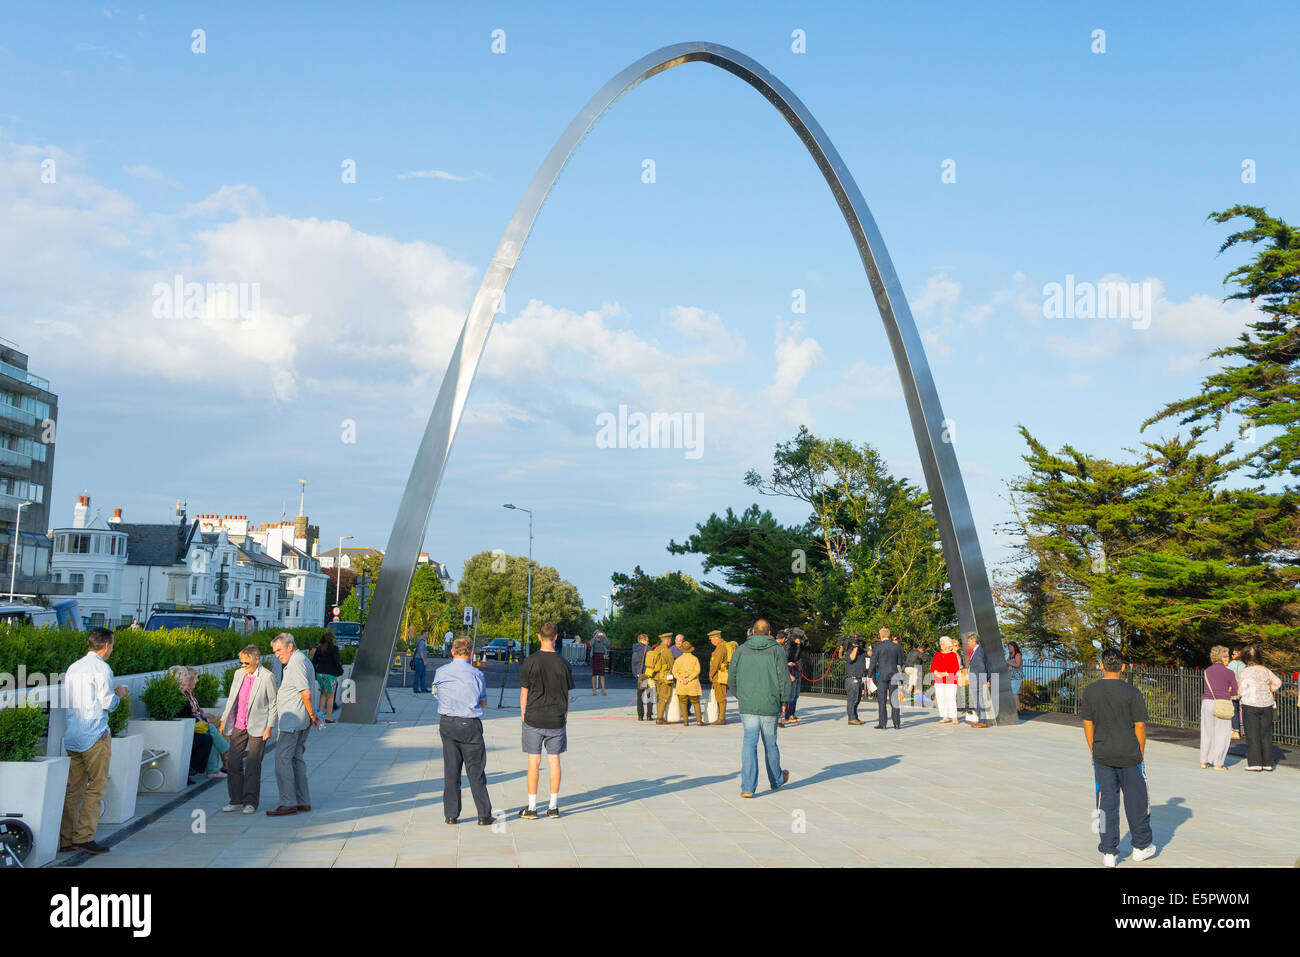 Folkestone, Kent, 4th August 2014. The Step Short First World War Memorial Arch in Folkestone, Kent, UK.  The Step - Stock Image